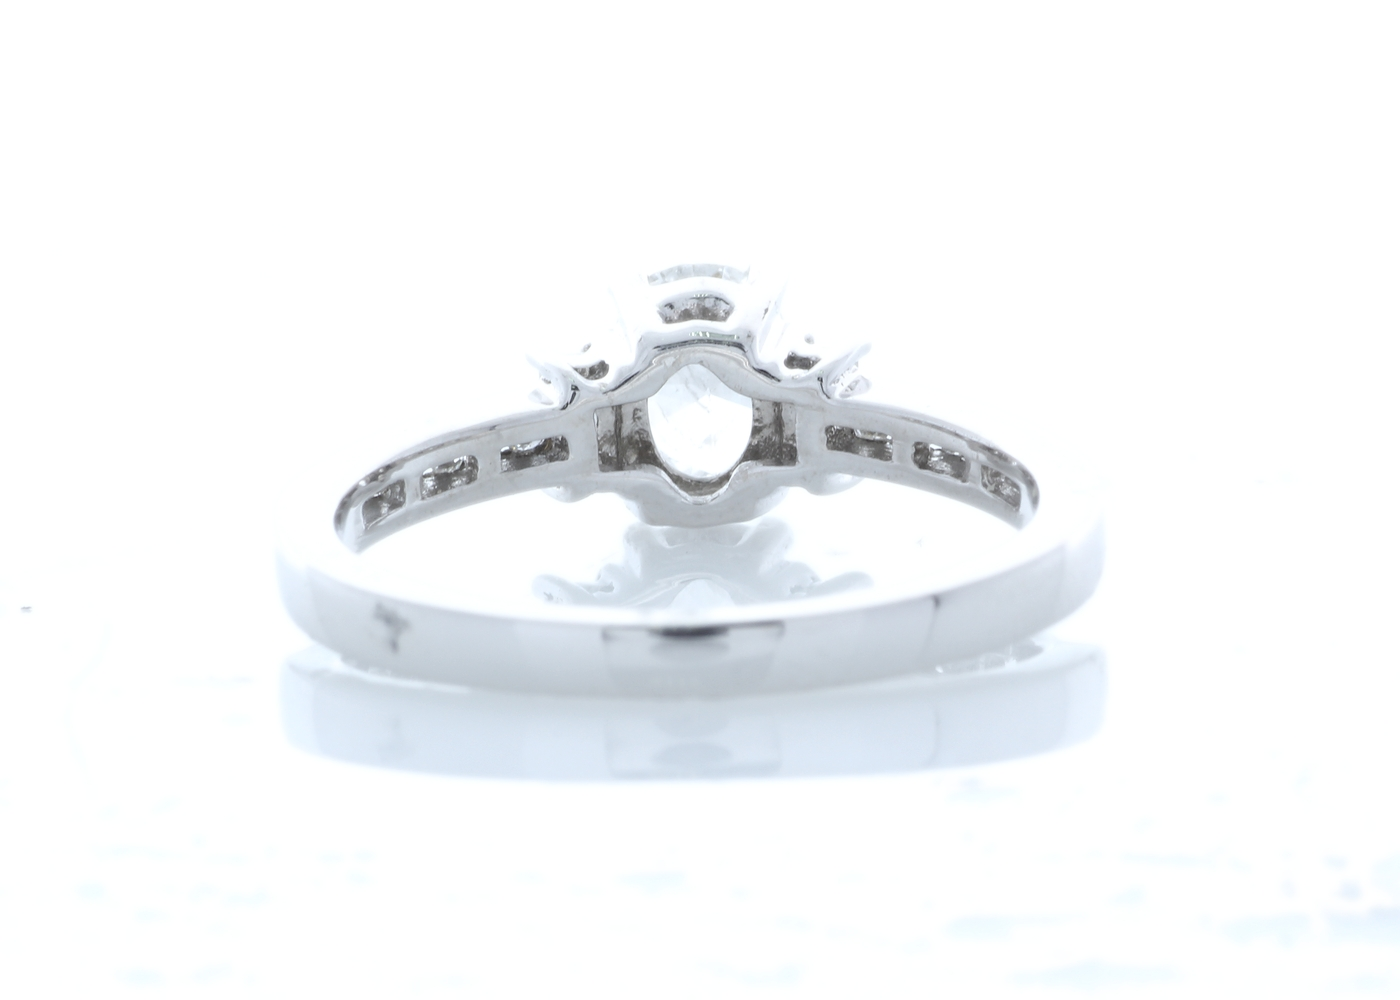 18ct White Gold Stone Set Shoulders Diamond Ring 0.74 Carats - Image 3 of 5